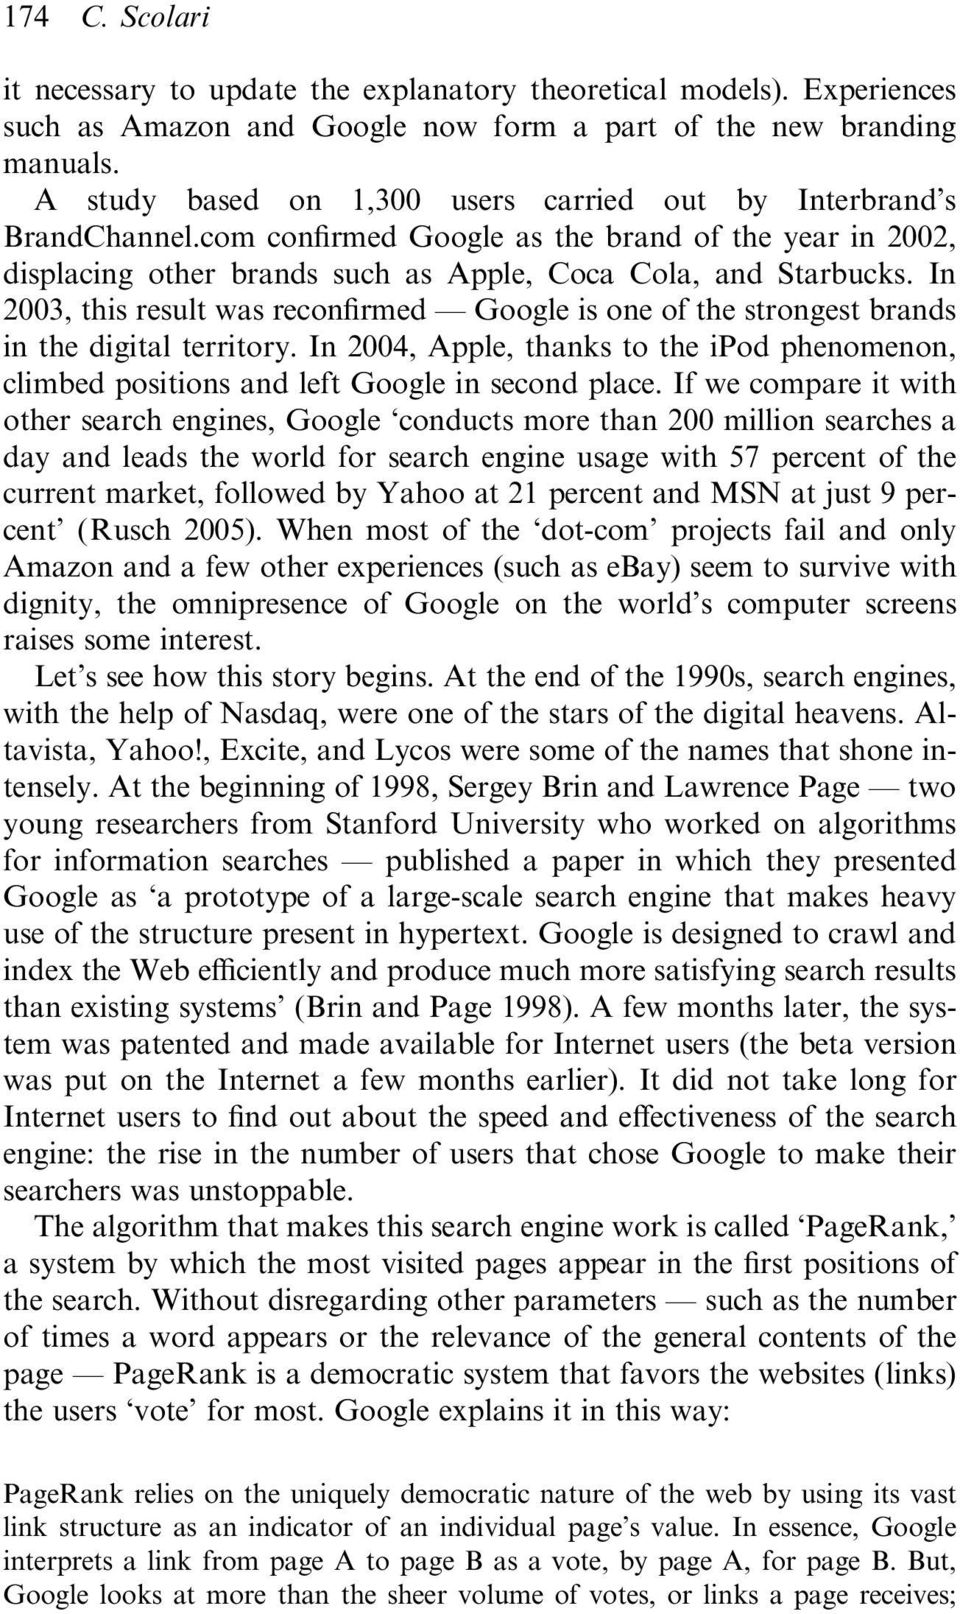 In 2003, this result was reconfirmed Google is one of the strongest brands in the digital territory. In 2004, Apple, thanks to the ipod phenomenon, climbed positions and left Google in second place.